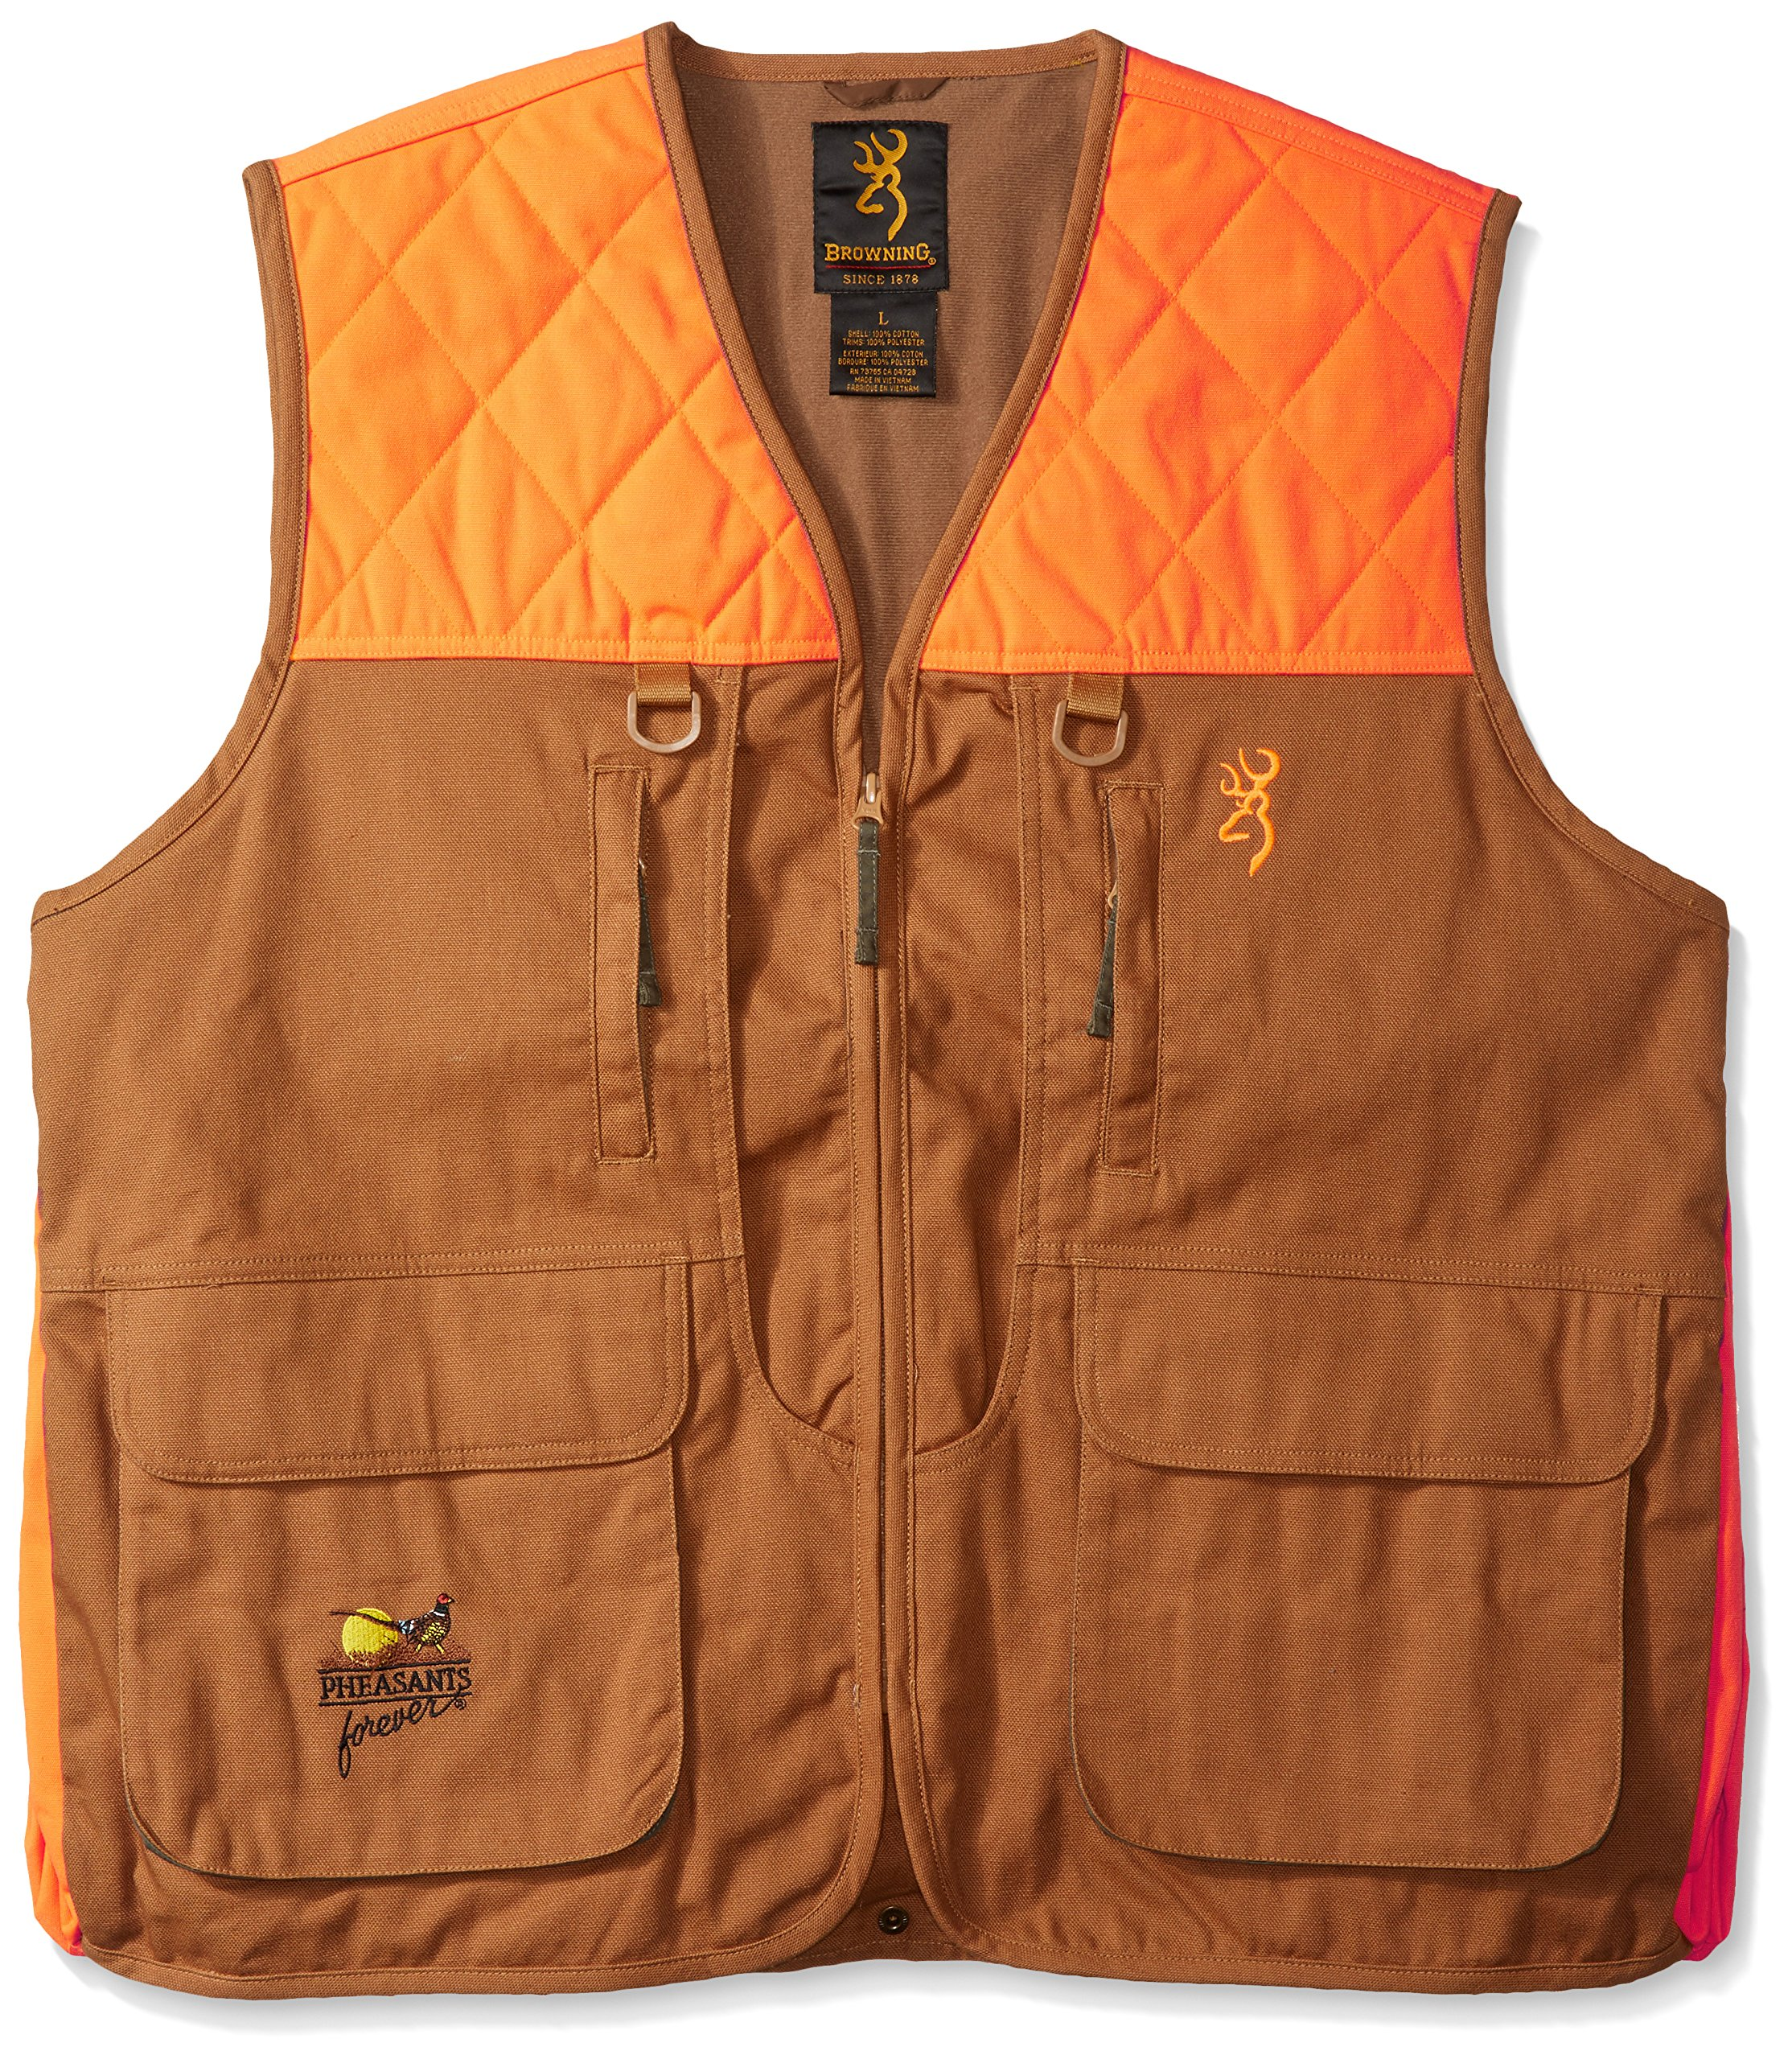 Browning Pheasants Forever Vest, Khaki/Blaze, Large by Browning